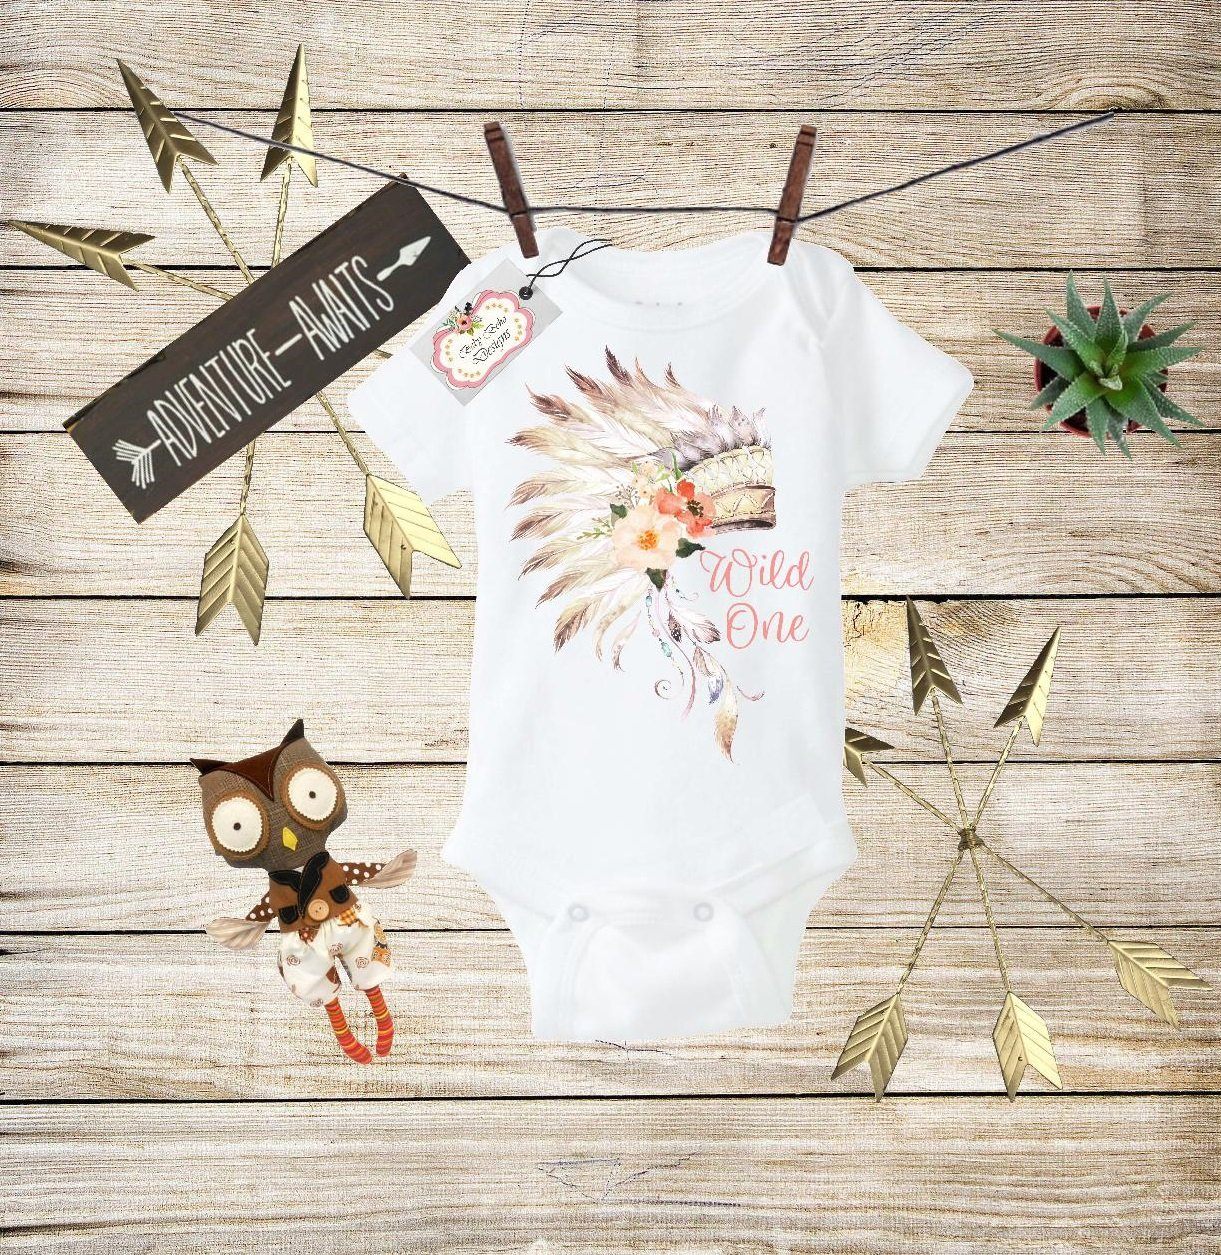 Boho Baby Clothes Wild One Bodysuit Wild One Baby Boho Bodysuit First Birthday Boho Outfit Toddler T-shirt Baby Shower Gift Custom Clothes Infant Bodysuit Baby Boho Clothes Baby Boho Designs